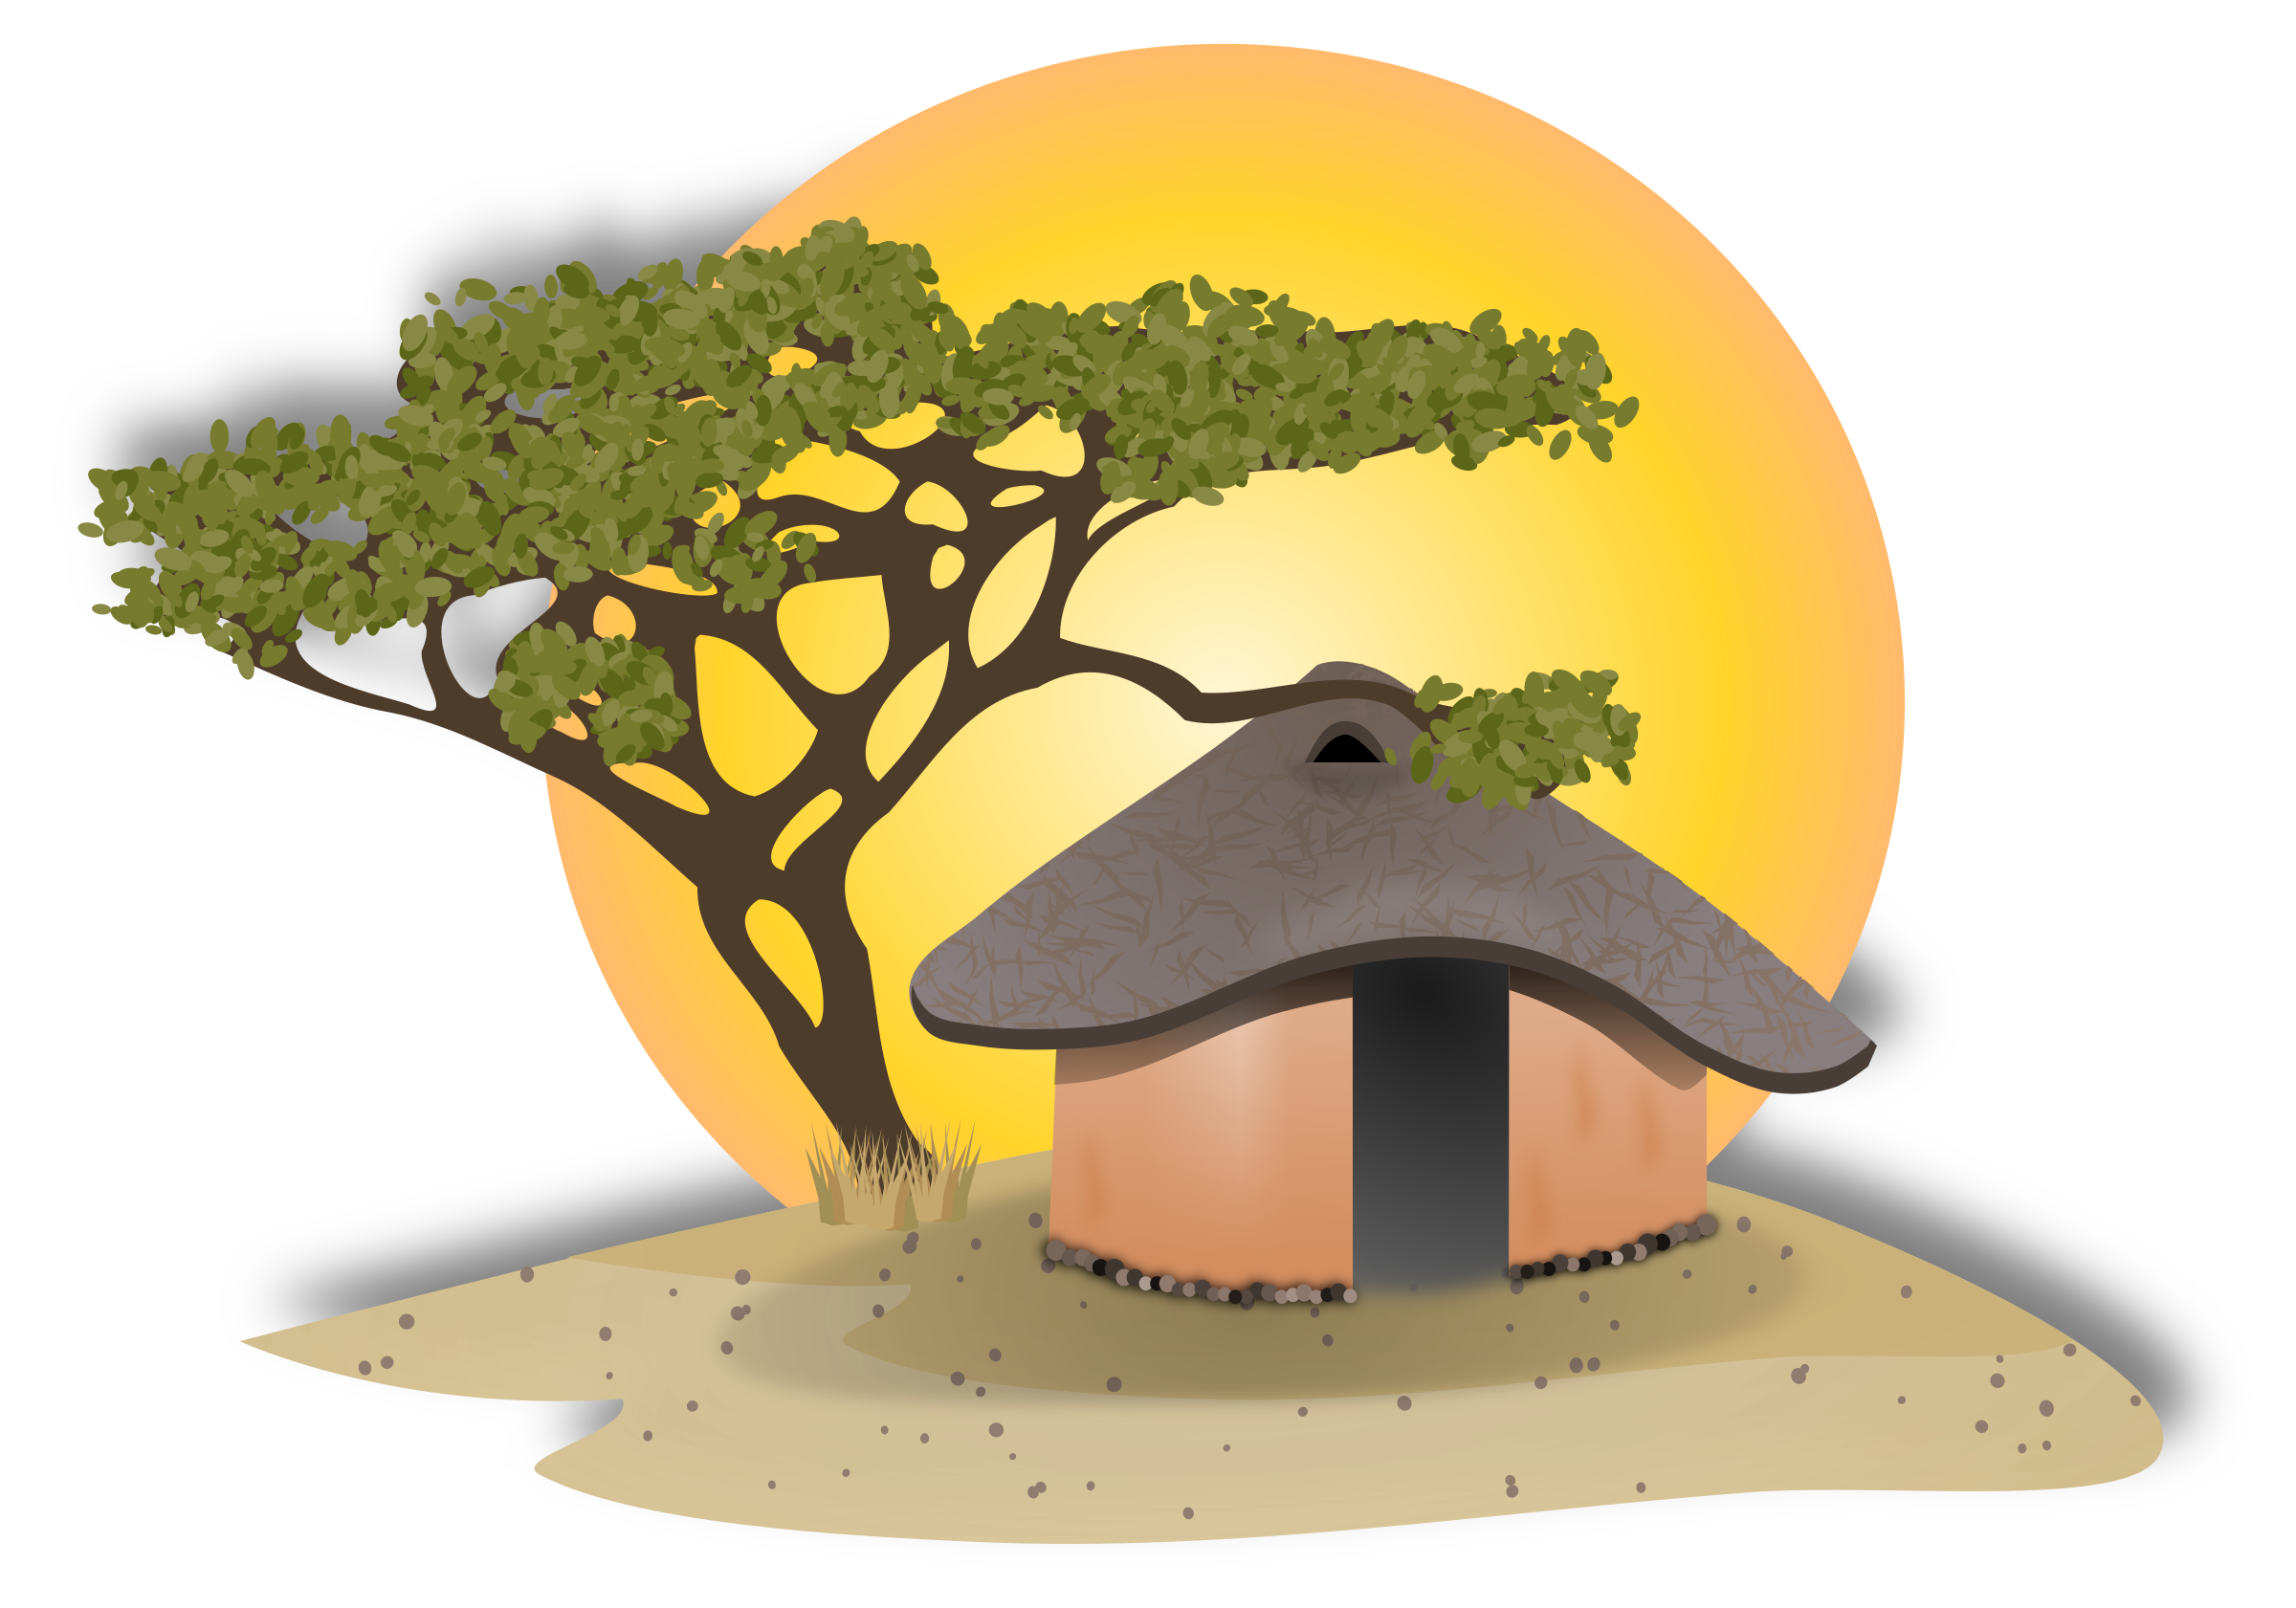 African hut drawing at. Desert clipart village mexican